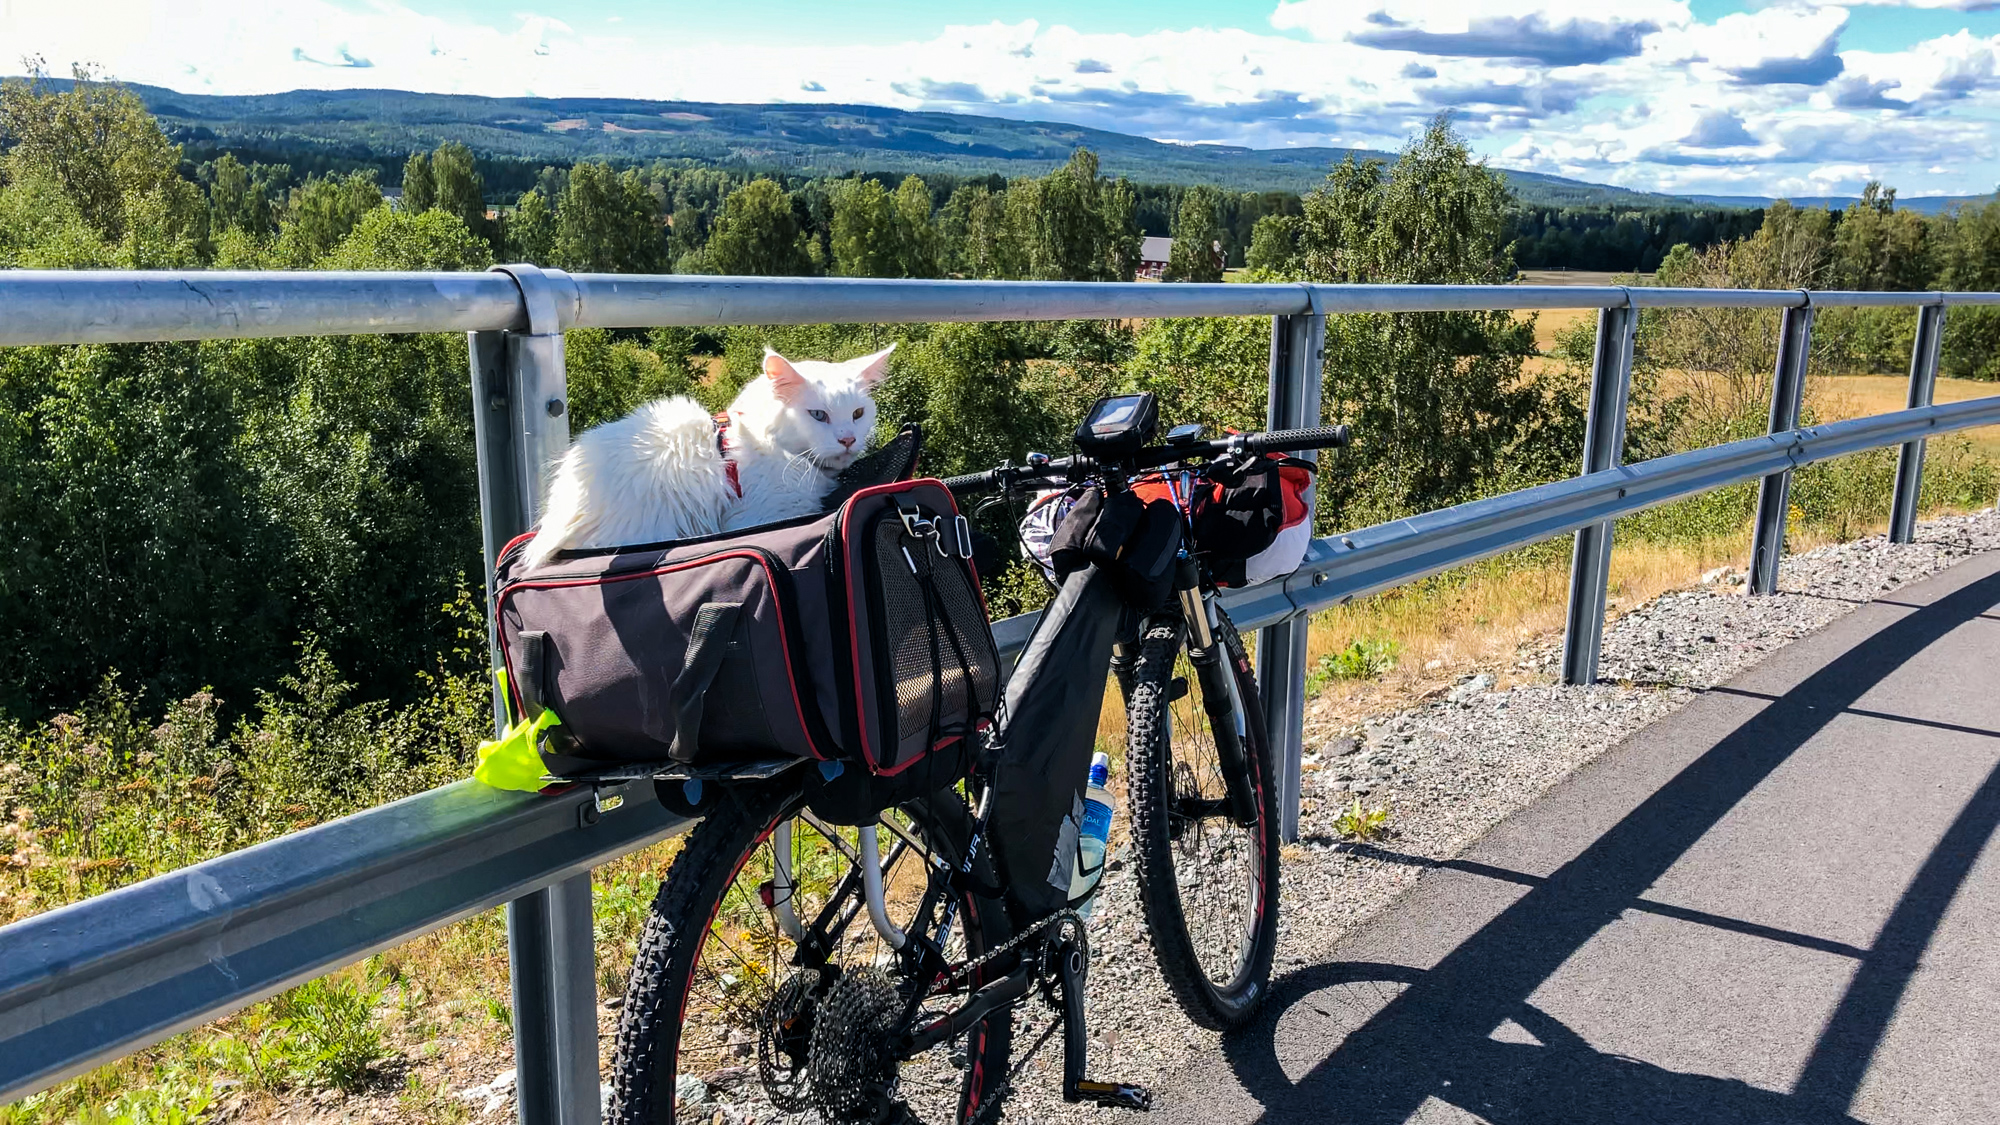 Cezar is no stranger to touring on bikes. Here, he sits comfortably in Norway. (Photo: Instagram/@cezars.crew)